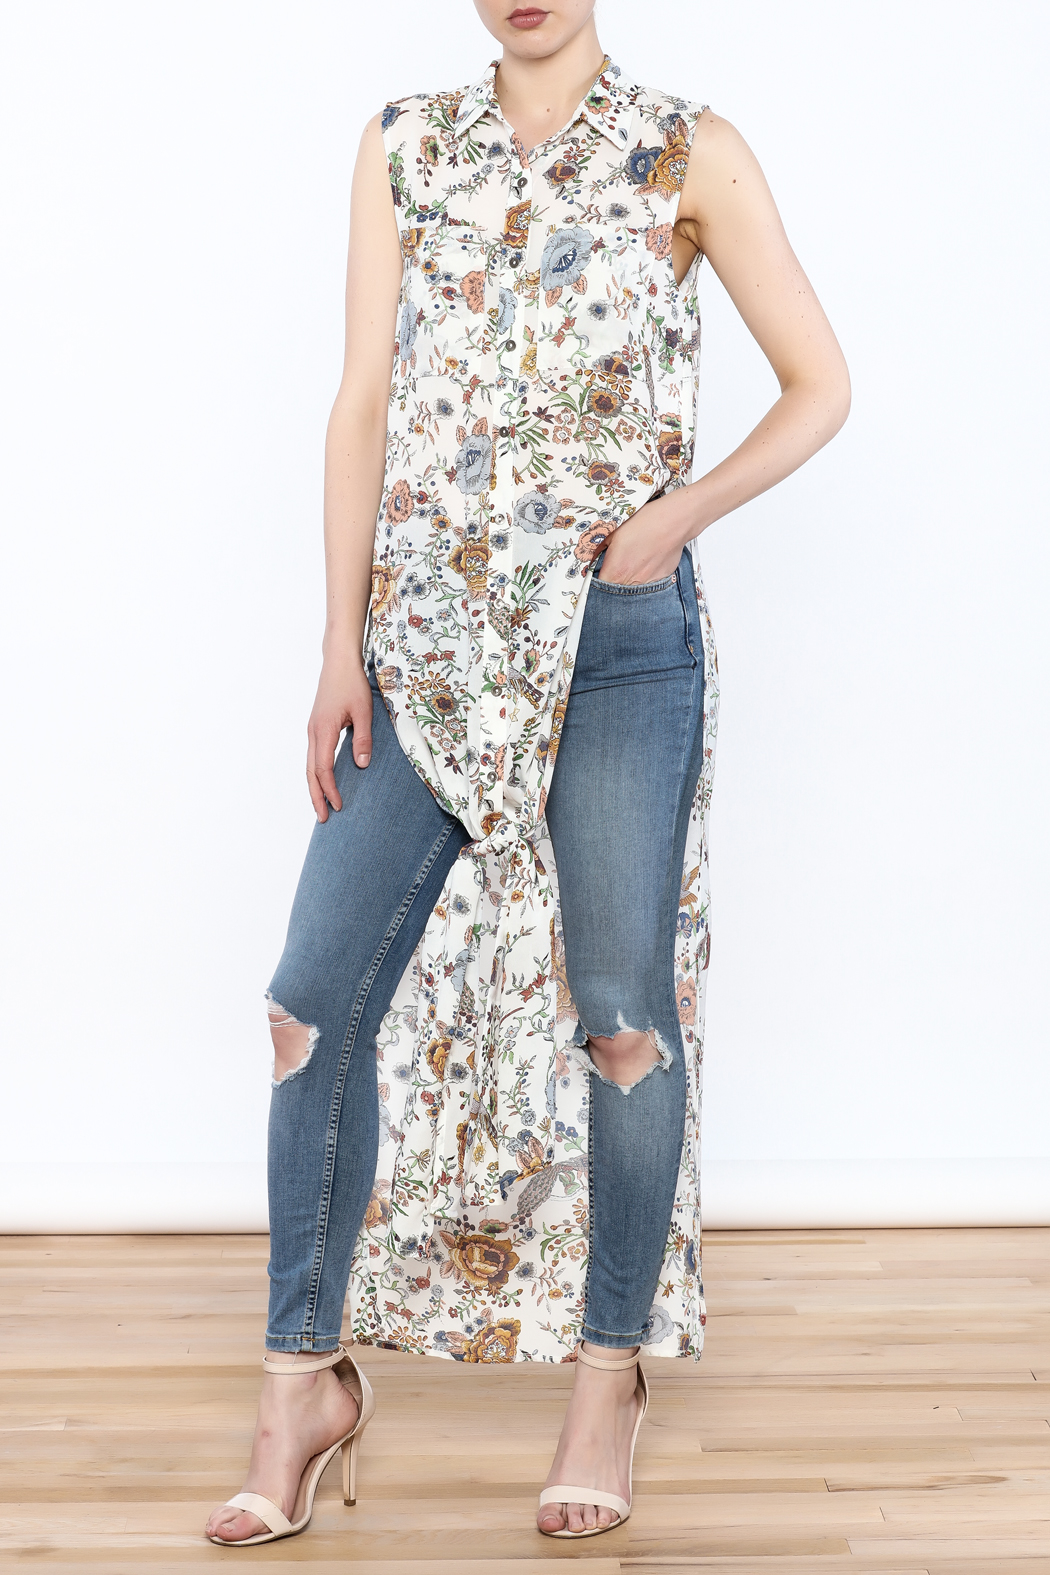 Hommage Floral Printed Maxi Top - Main Image